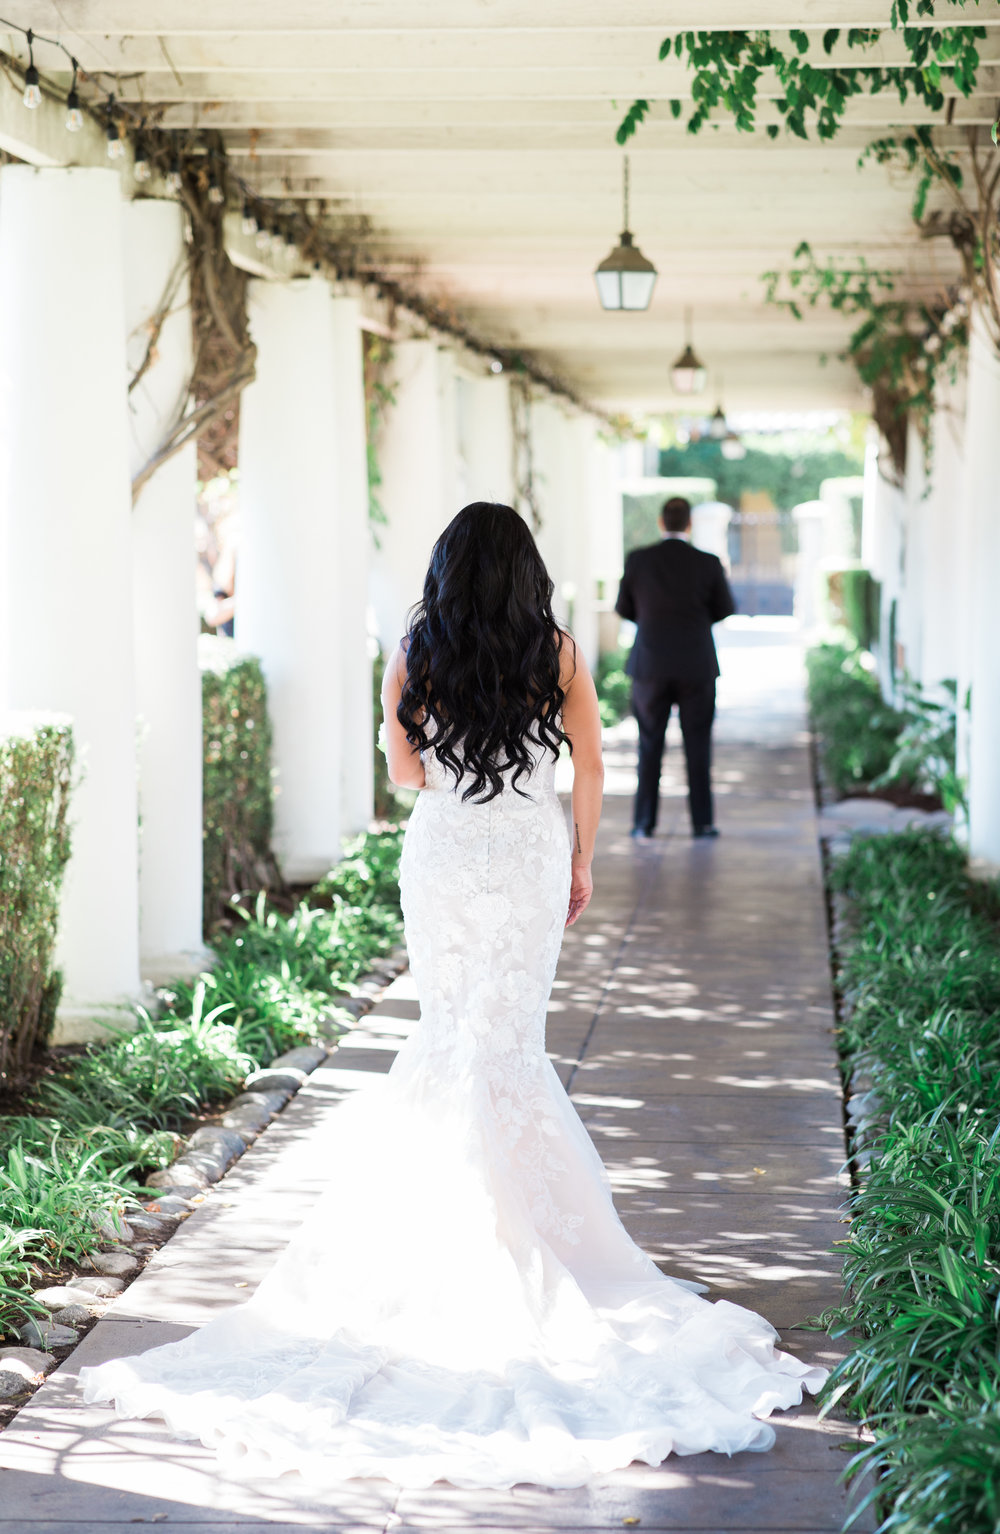 Bonphotage California Fine Art Wedding Photography - Langham Huntington Pasadena